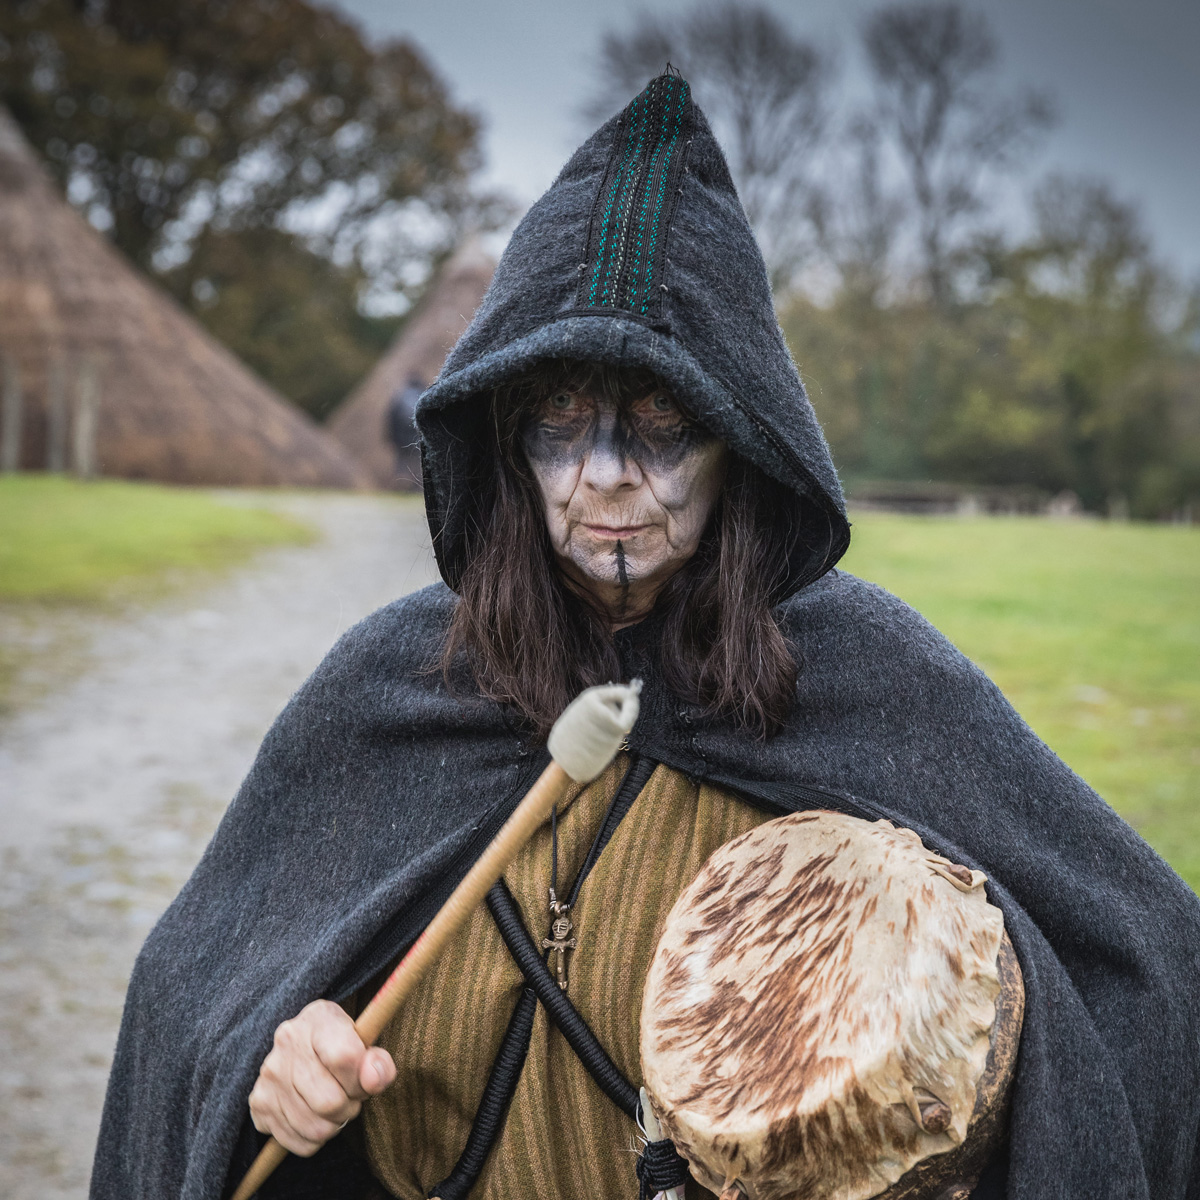 Shelley Morris, Professional Musician, Percussionist and Community Arts Educator and Mentor at Castell Henllys Iron Age Village